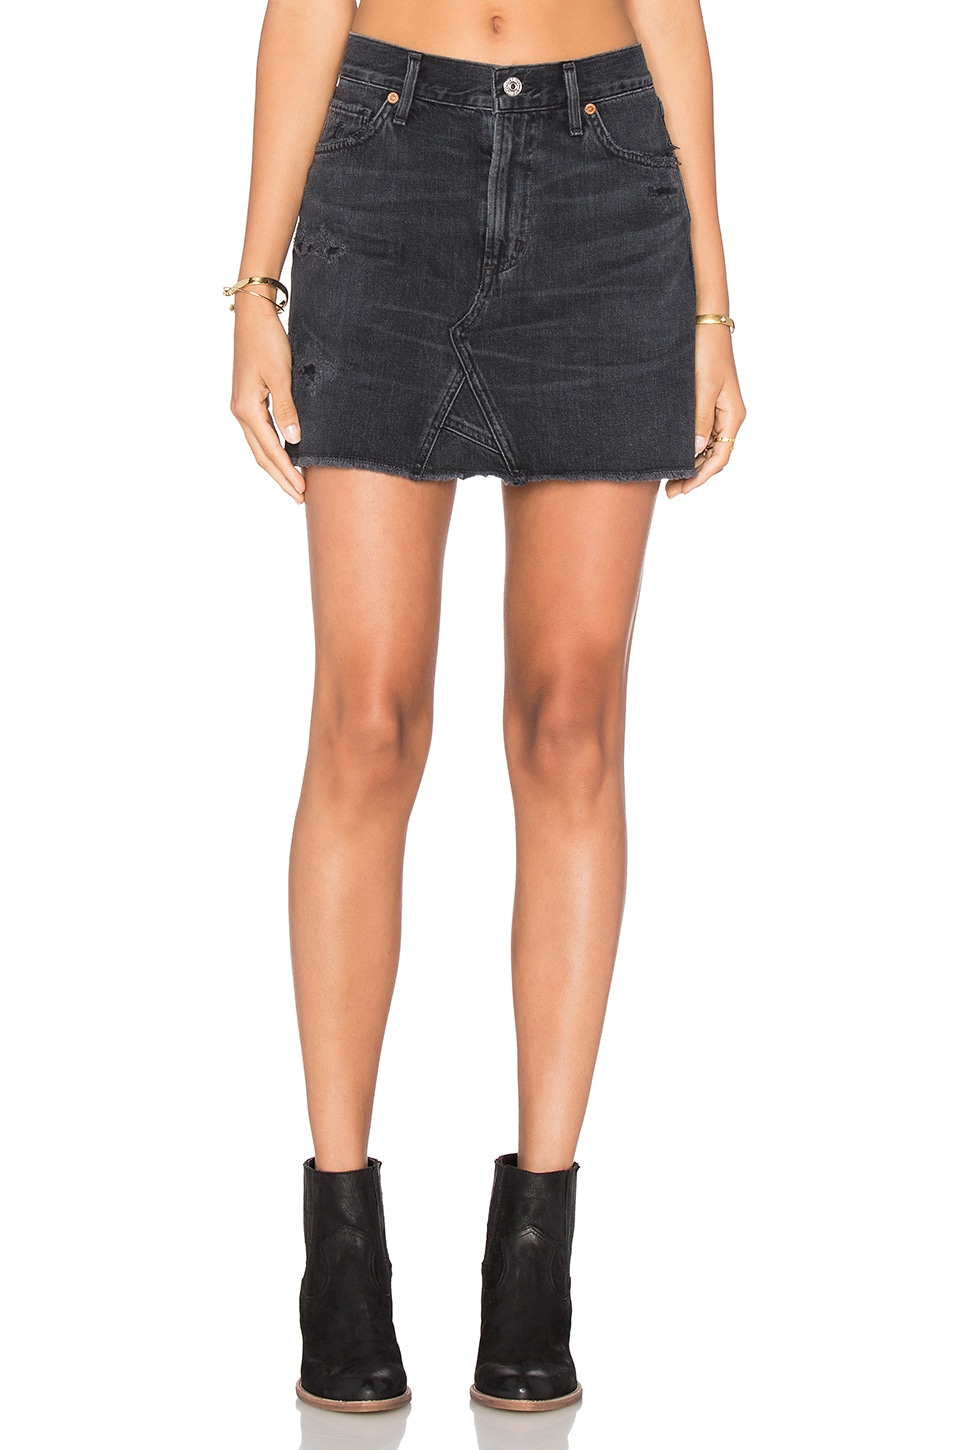 Citizens of Humanity Cut Off Mini Skirt in Black Hawk | REVOLVE